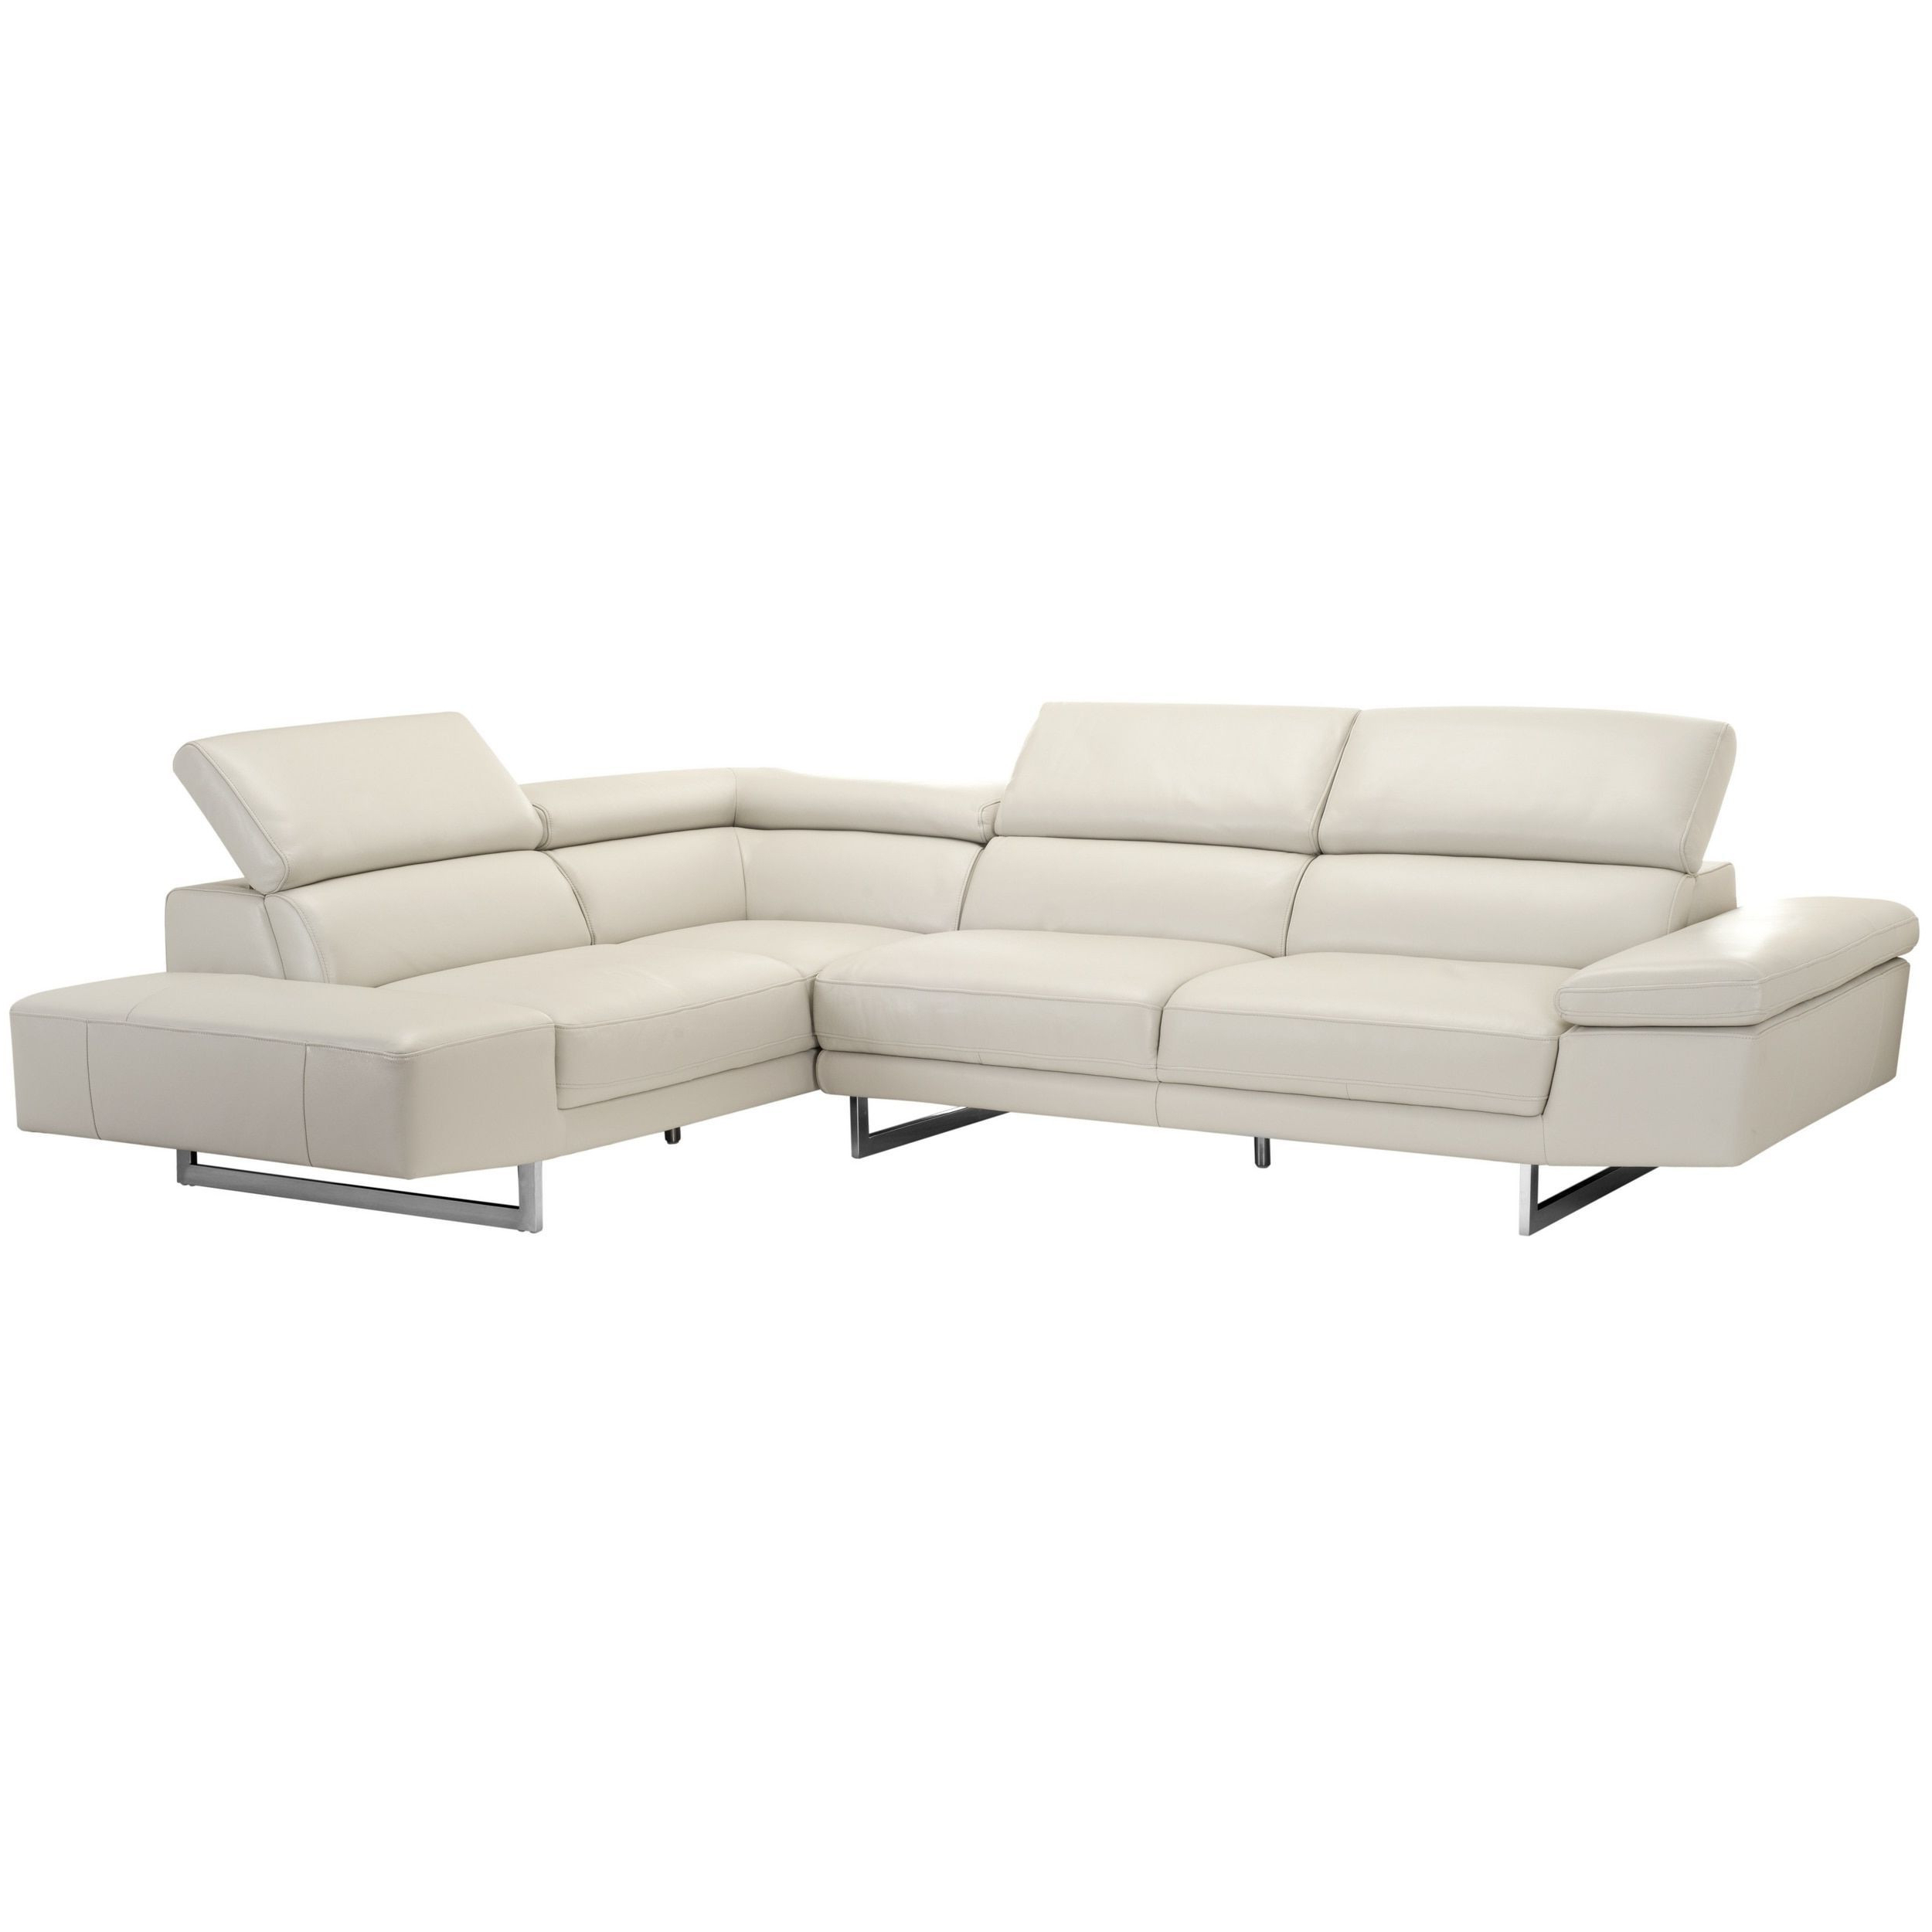 Favorite Las Grande Sofá Chaise Longue Concepto Para Morada – Cuartoz Within Egan Ii Cement Sofa Sectionals With Reversible Chaise (View 12 of 20)